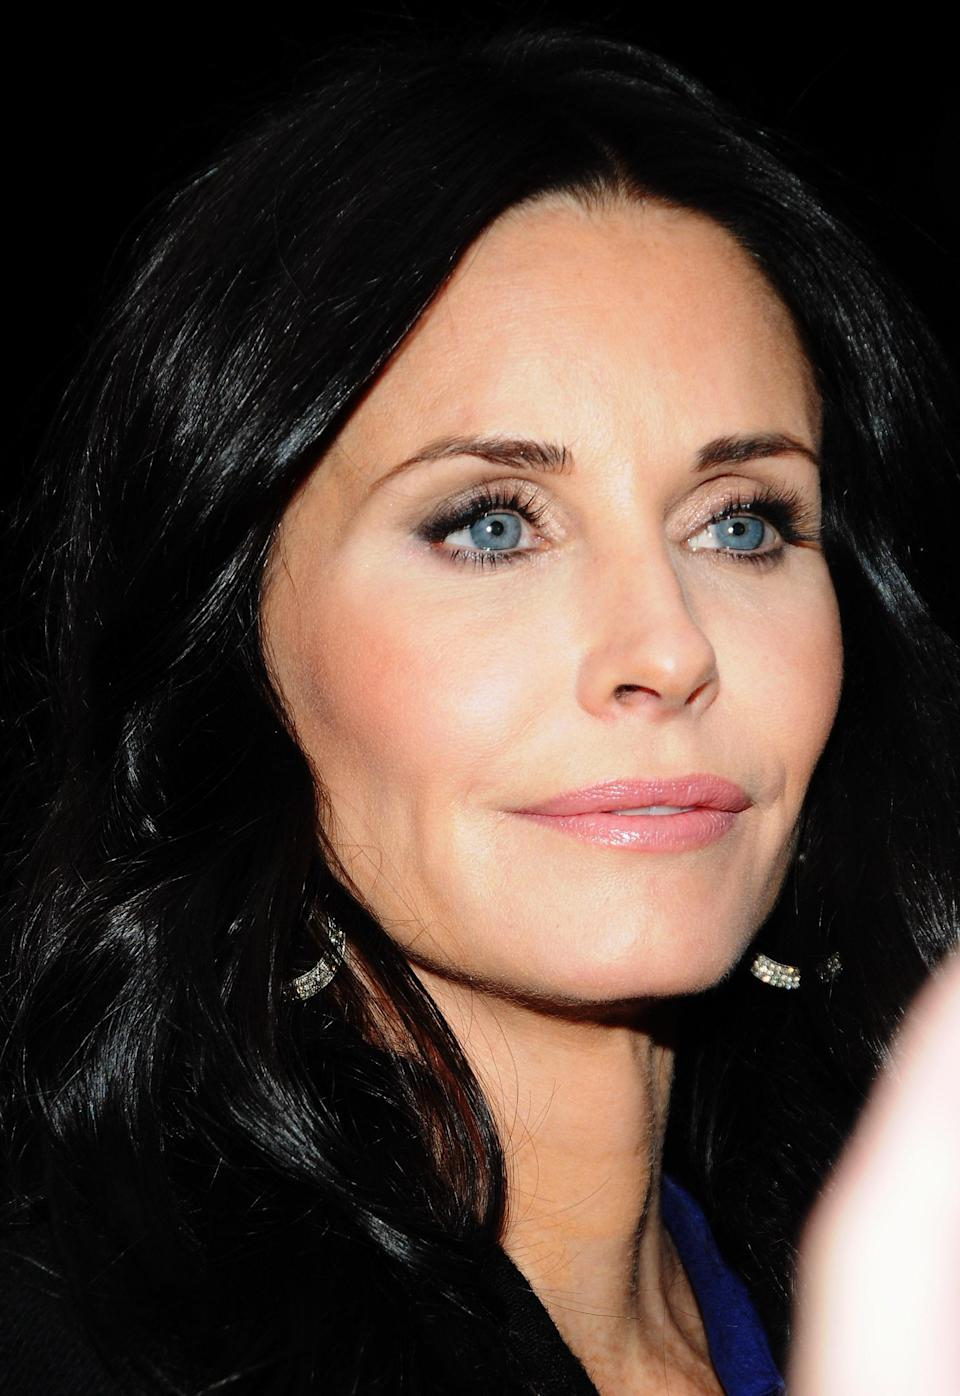 """<div class=""""caption-credit""""> Photo by: (Photo by Desiree Navarro/FilmMagic)</div>"""" It's not that I haven't tried Botox - but I hated it,"""" Courteney Cox admitted in a <i>Marie Claire</i> interview. """"I went to this doctor once, and he was like, 'Oh, let me do it just here and here and here.' And I was miserable. I mean, I'm an actor, I've got to be able to move my face."""""""